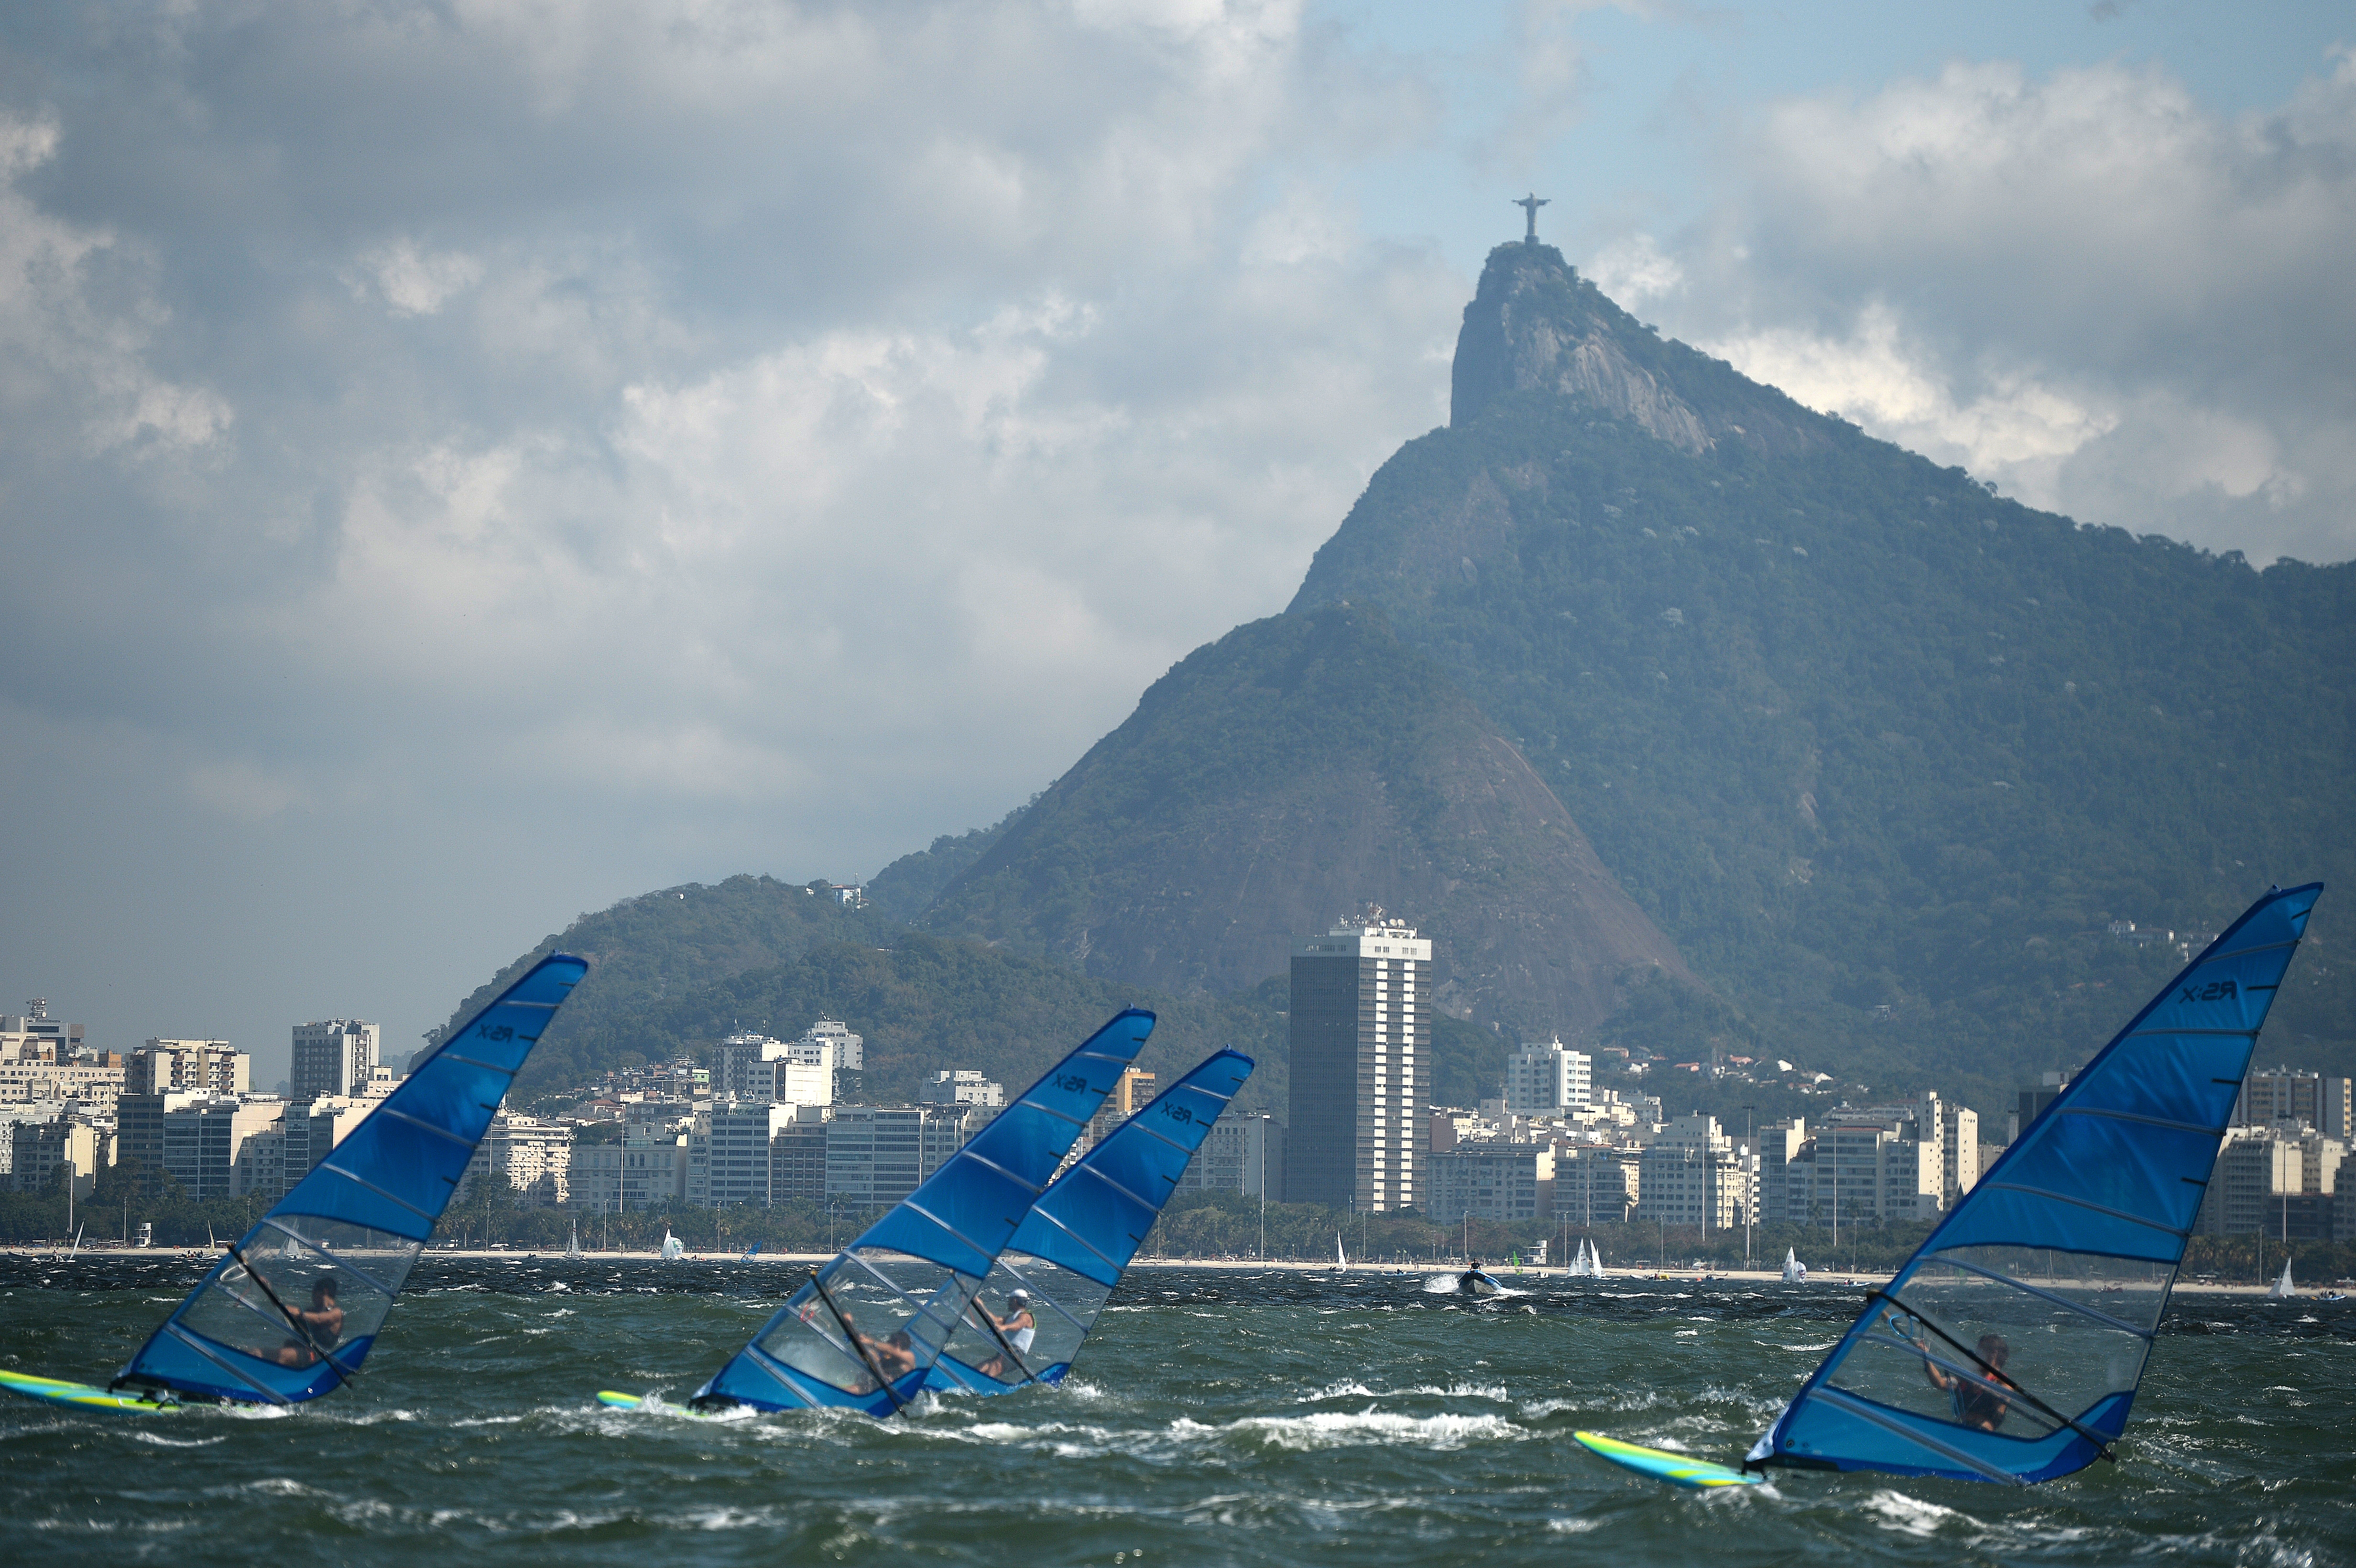 Windsurfers practice for the Summer Olympic Games in Guanabara Bay in Rio de Janeiro last week. The pollution overwhelming the bay in southeast Brazil has raised significant concerns about the health of the swimmers and sailors at the Rio Olympics.